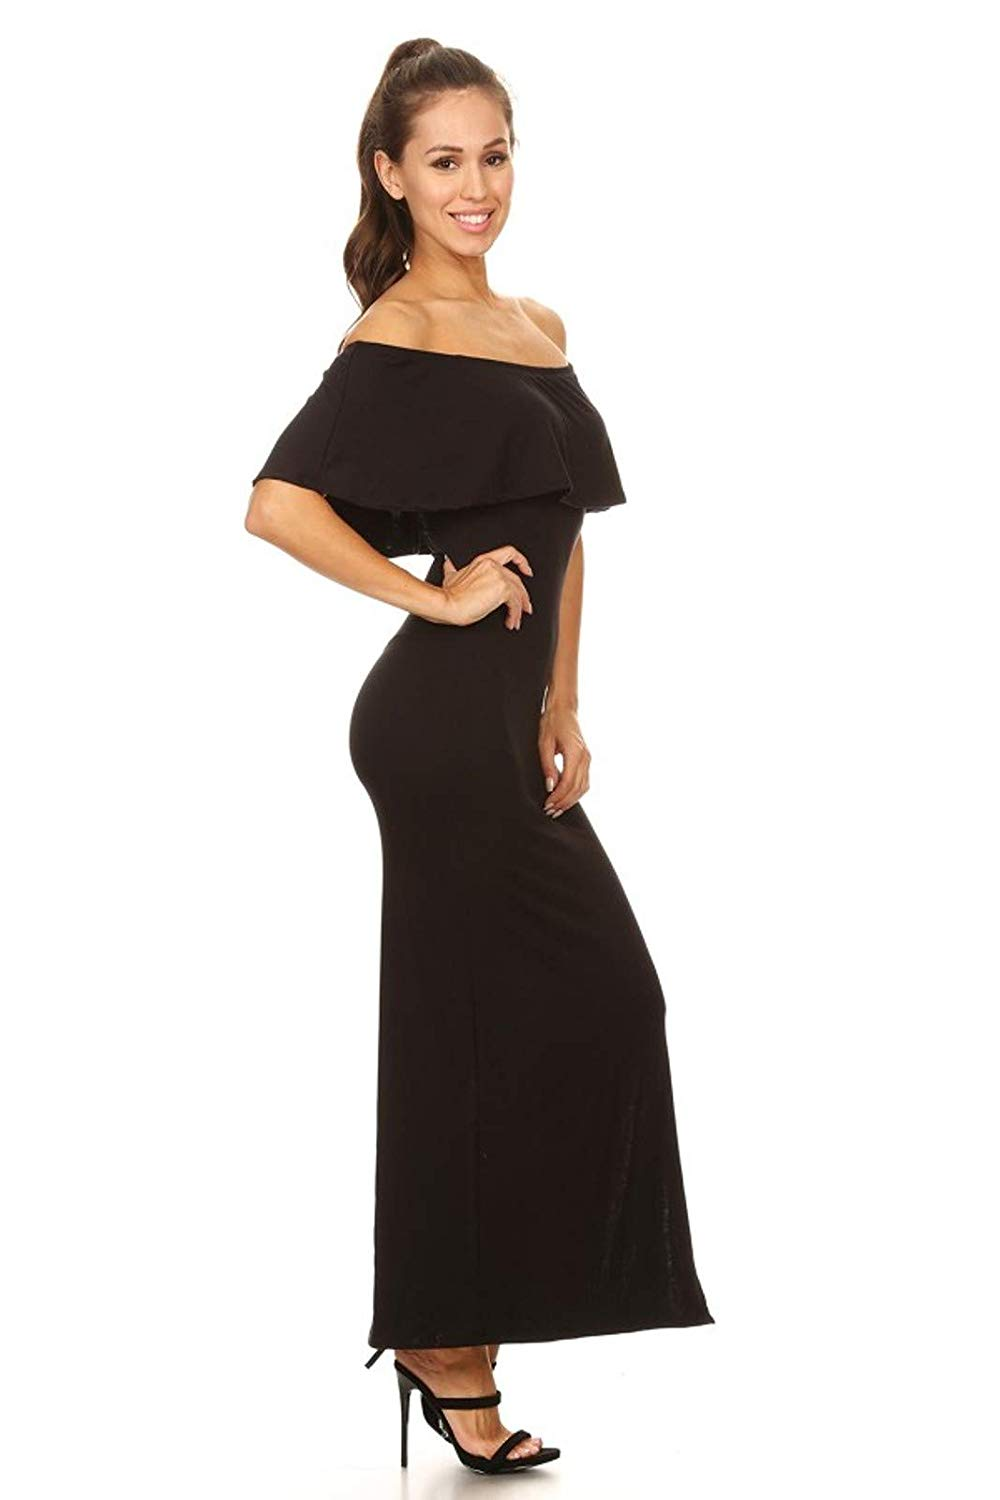 Vibe Sportswear Off Shoulder Ruffle Maxi Dress, Comfortable Stretch Fabric, Lightweight, Classy-Casual, Mid Calf Side Slit